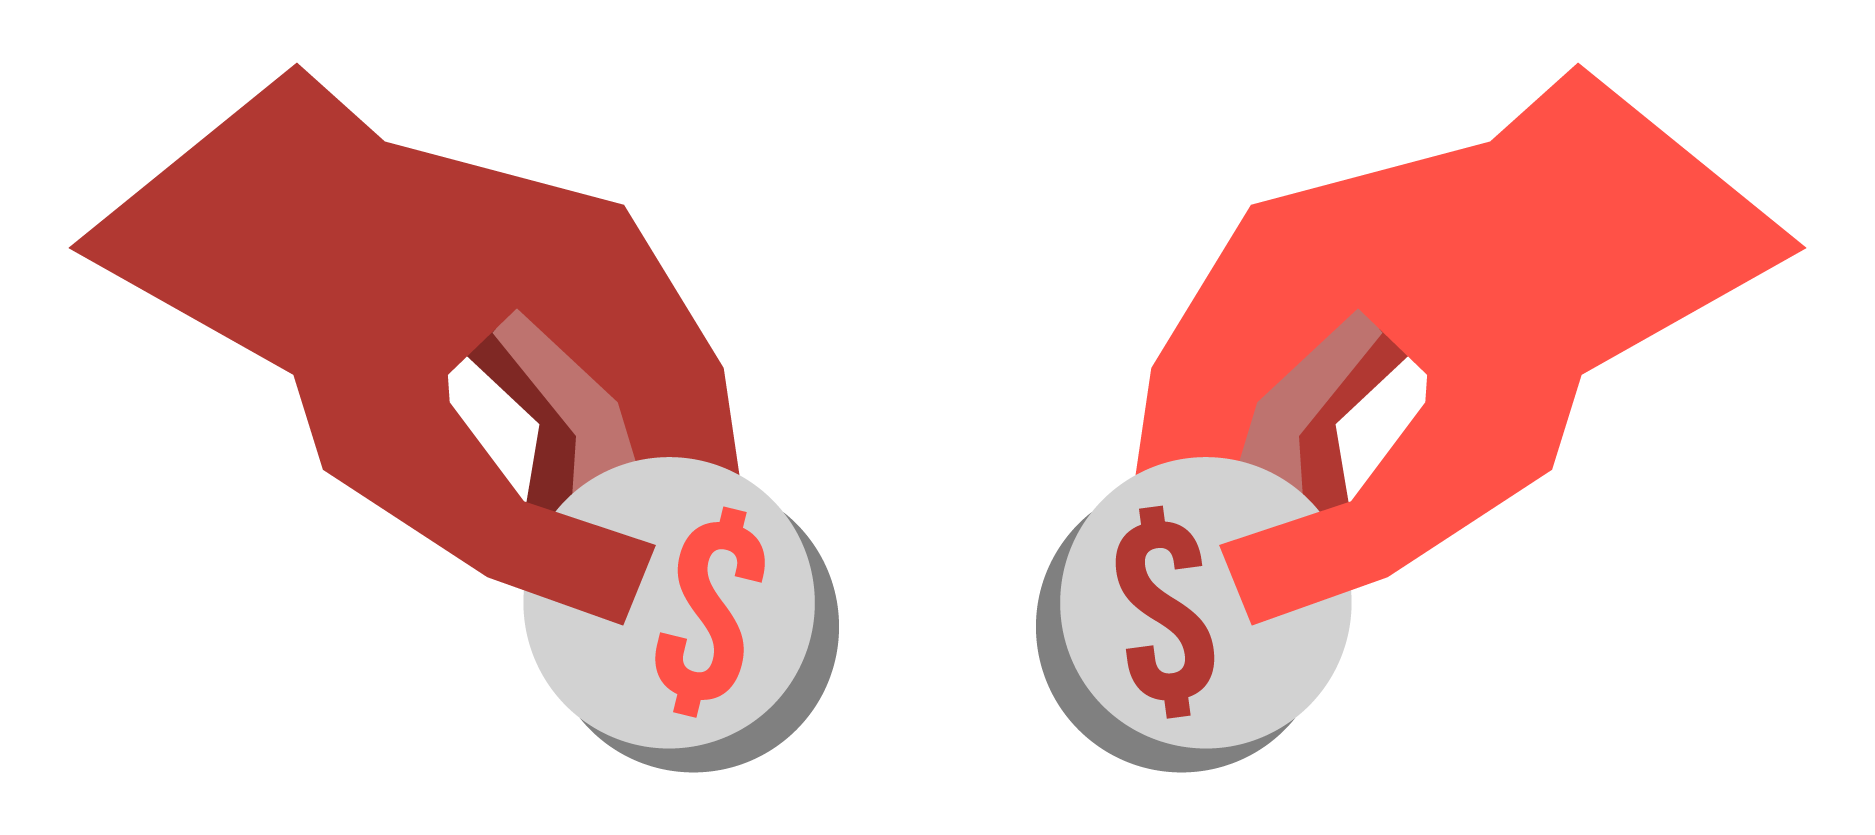 An illustration of two hands depositing coins with dollar signs on them.